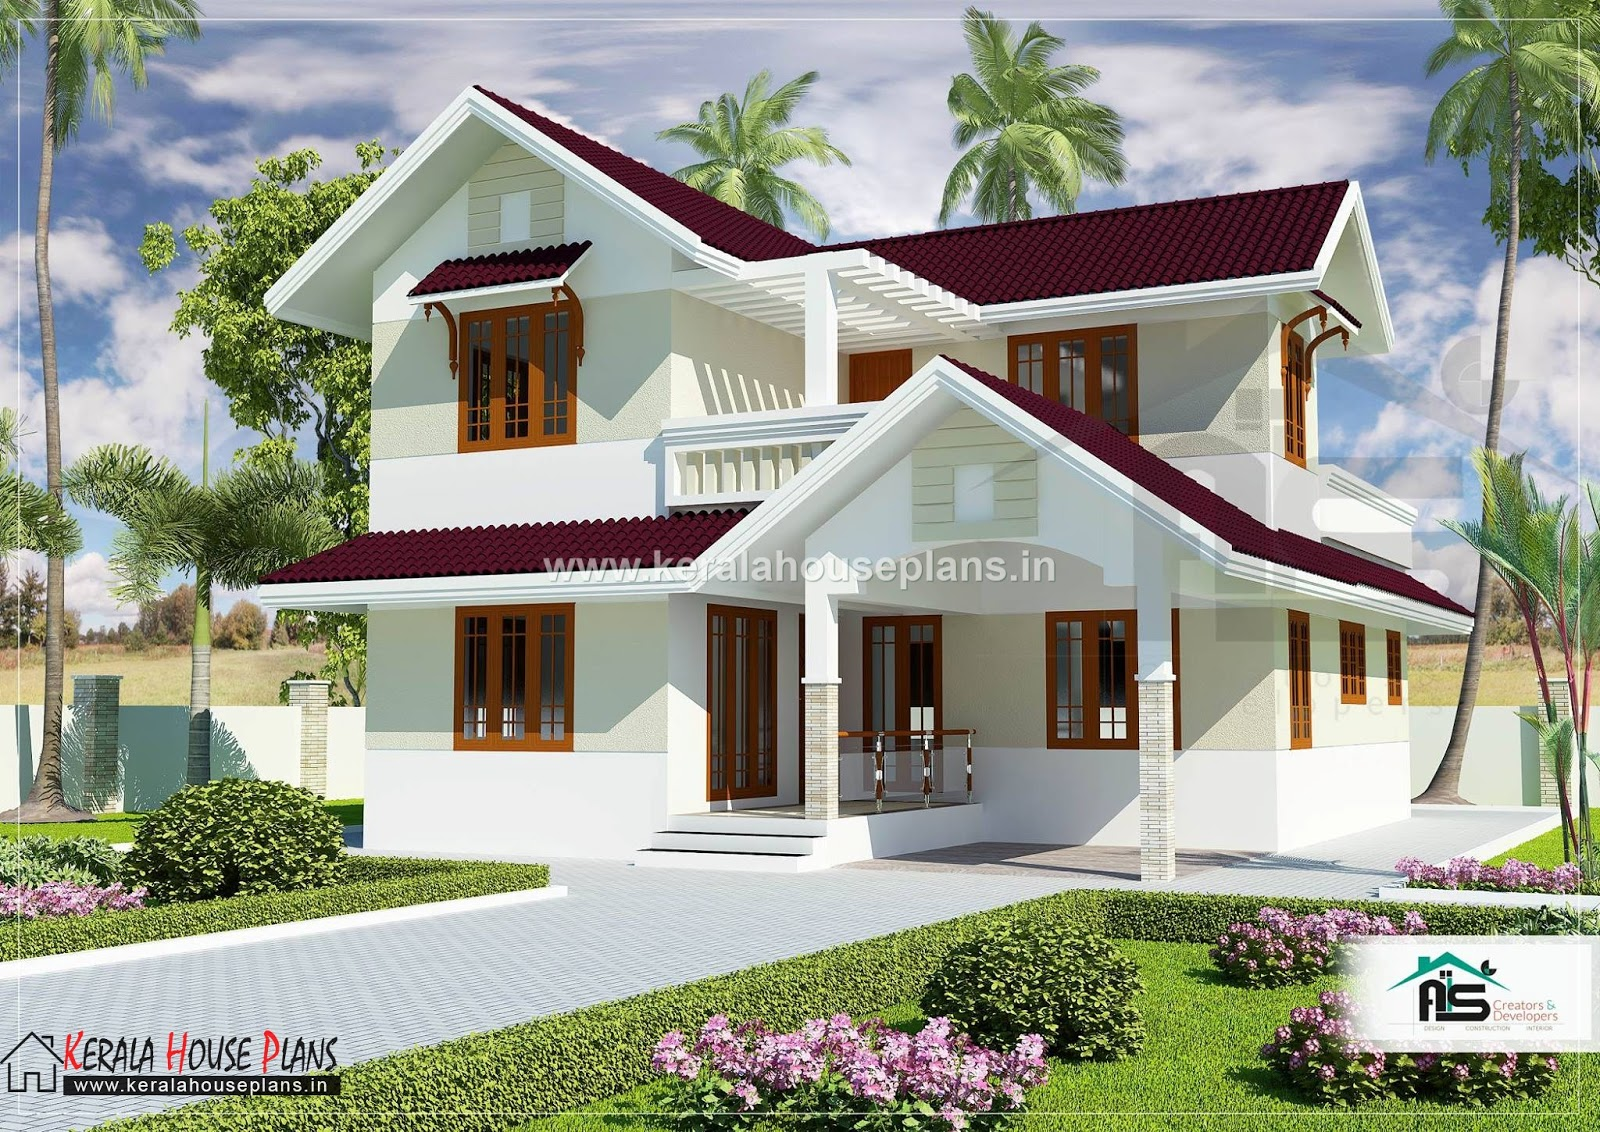 Kerala model house plans with elevation 1829 sqft kerala for Model home plans